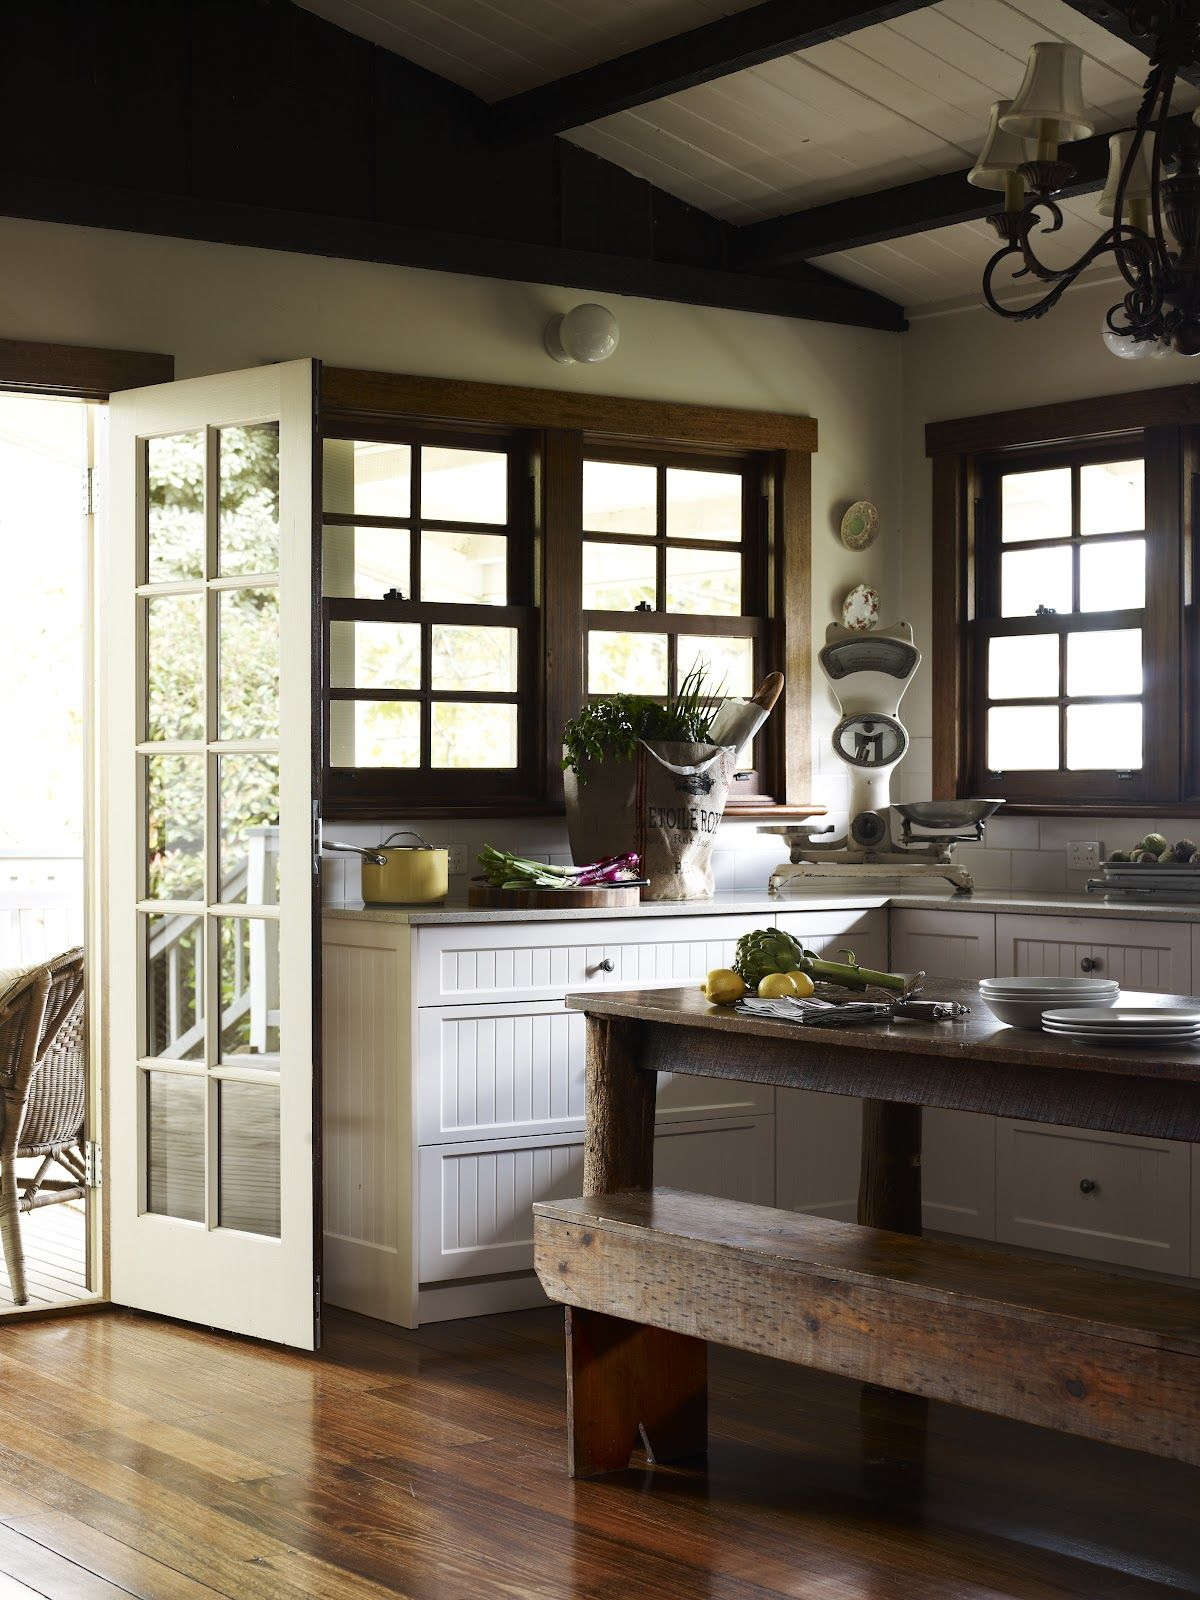 beautiful south country kitchens country kitchen farmhouse style kitchen rustic kitchen on kitchen cabinets rustic farmhouse style id=27301